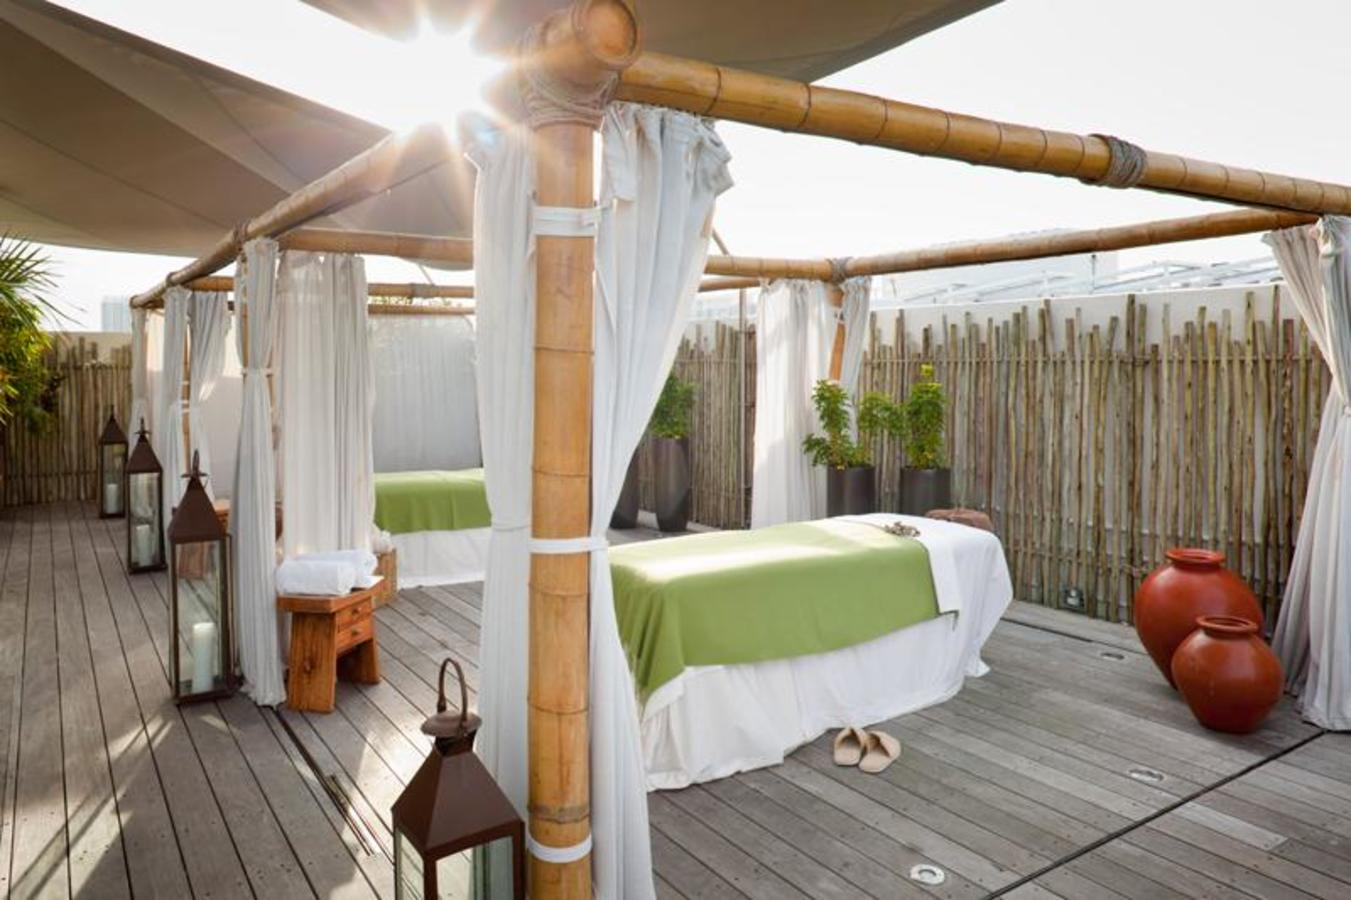 Spa Cabanas on The Deck